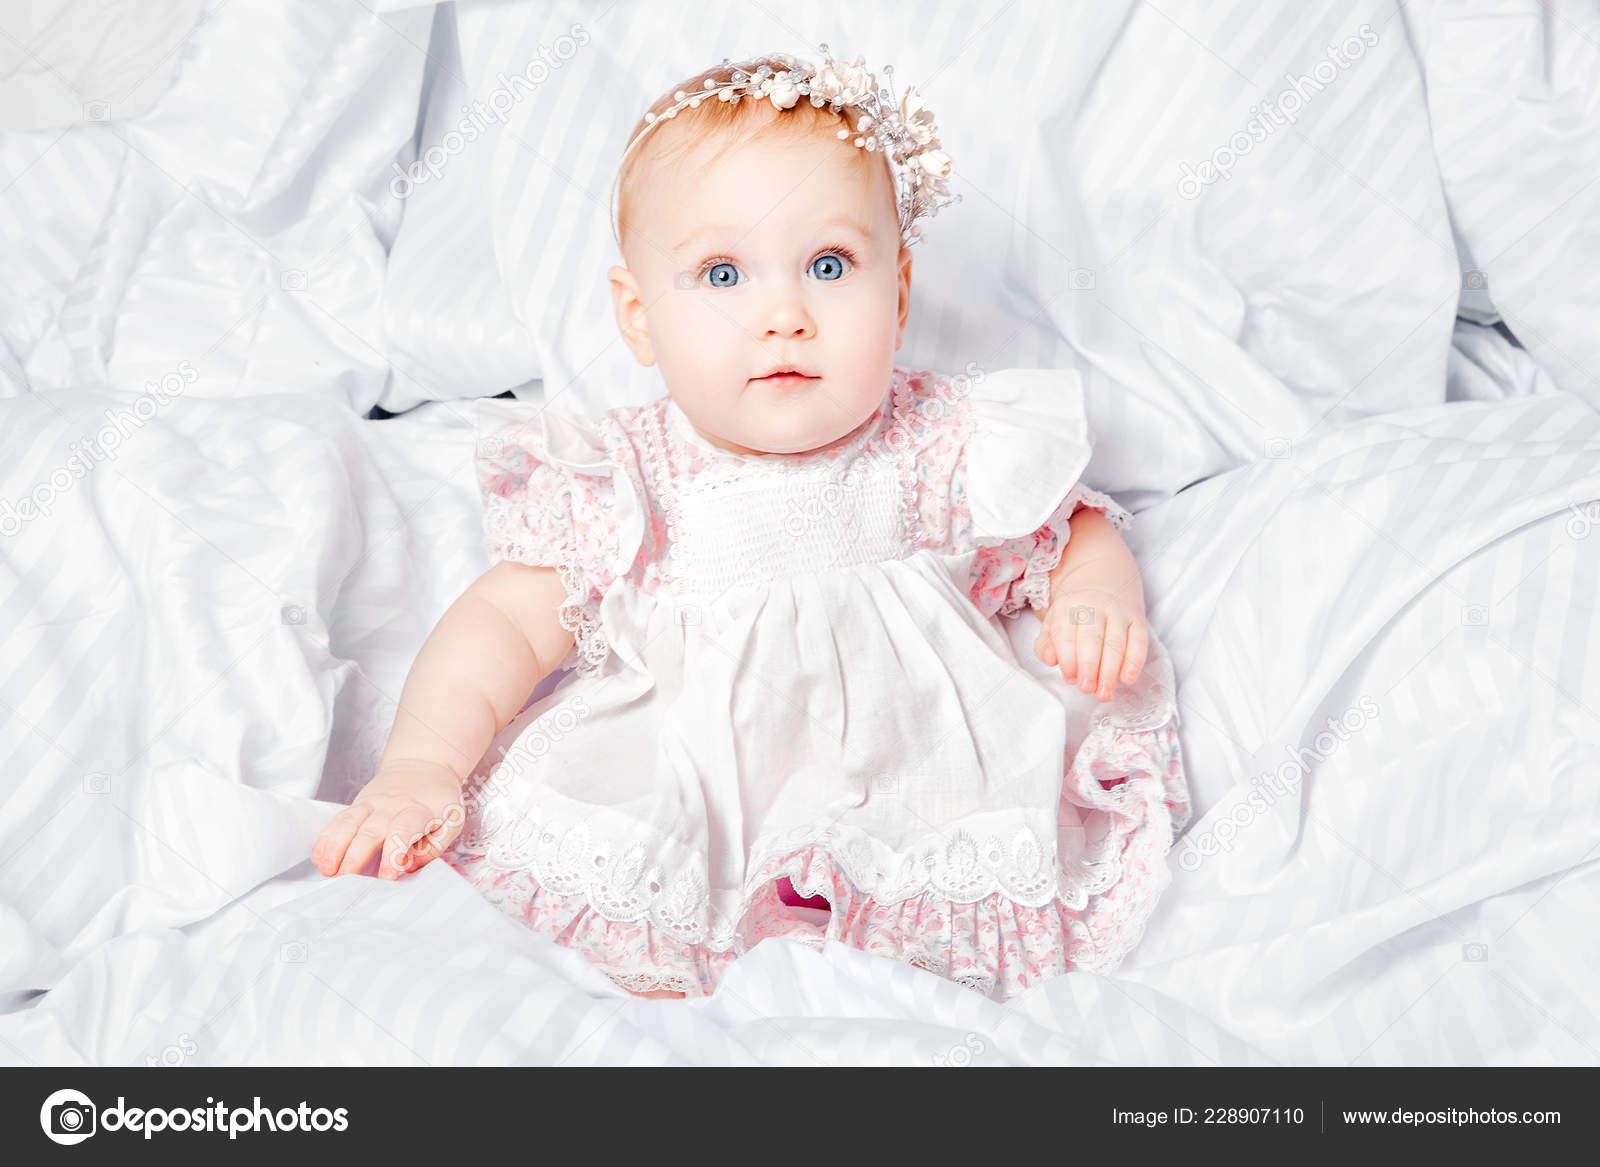 Image of: Photos Cute And Pretty Young Baby Girl In Nice Dress Over White Blanket Stock Image Depositphotos Cute Pretty Young Baby Girl Nice Dress White Blanket Stock Photo